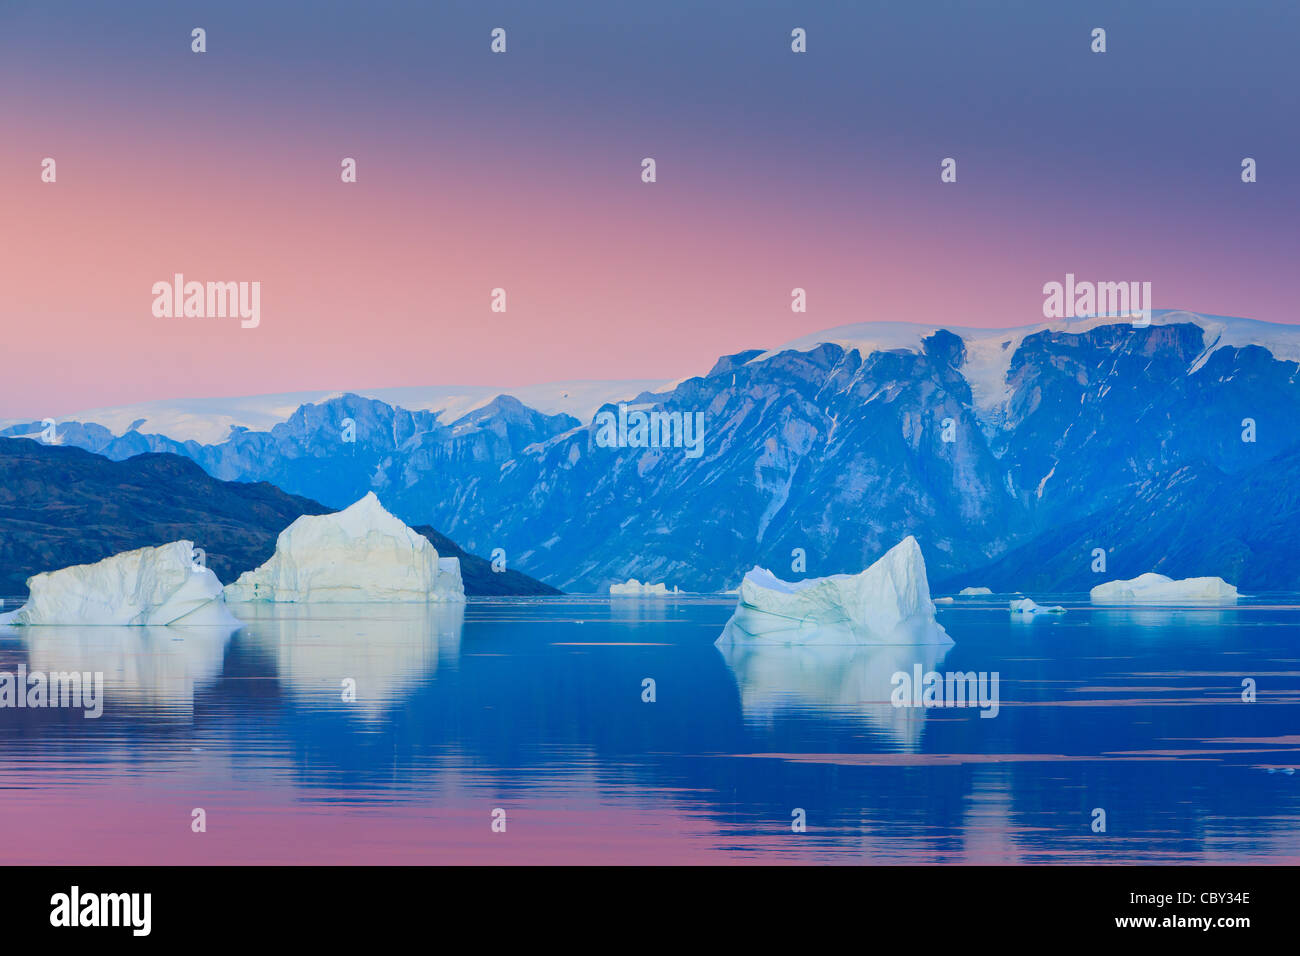 Sunrise in the Røde Fjord, Scoresbysund, Greenland - Stock Image